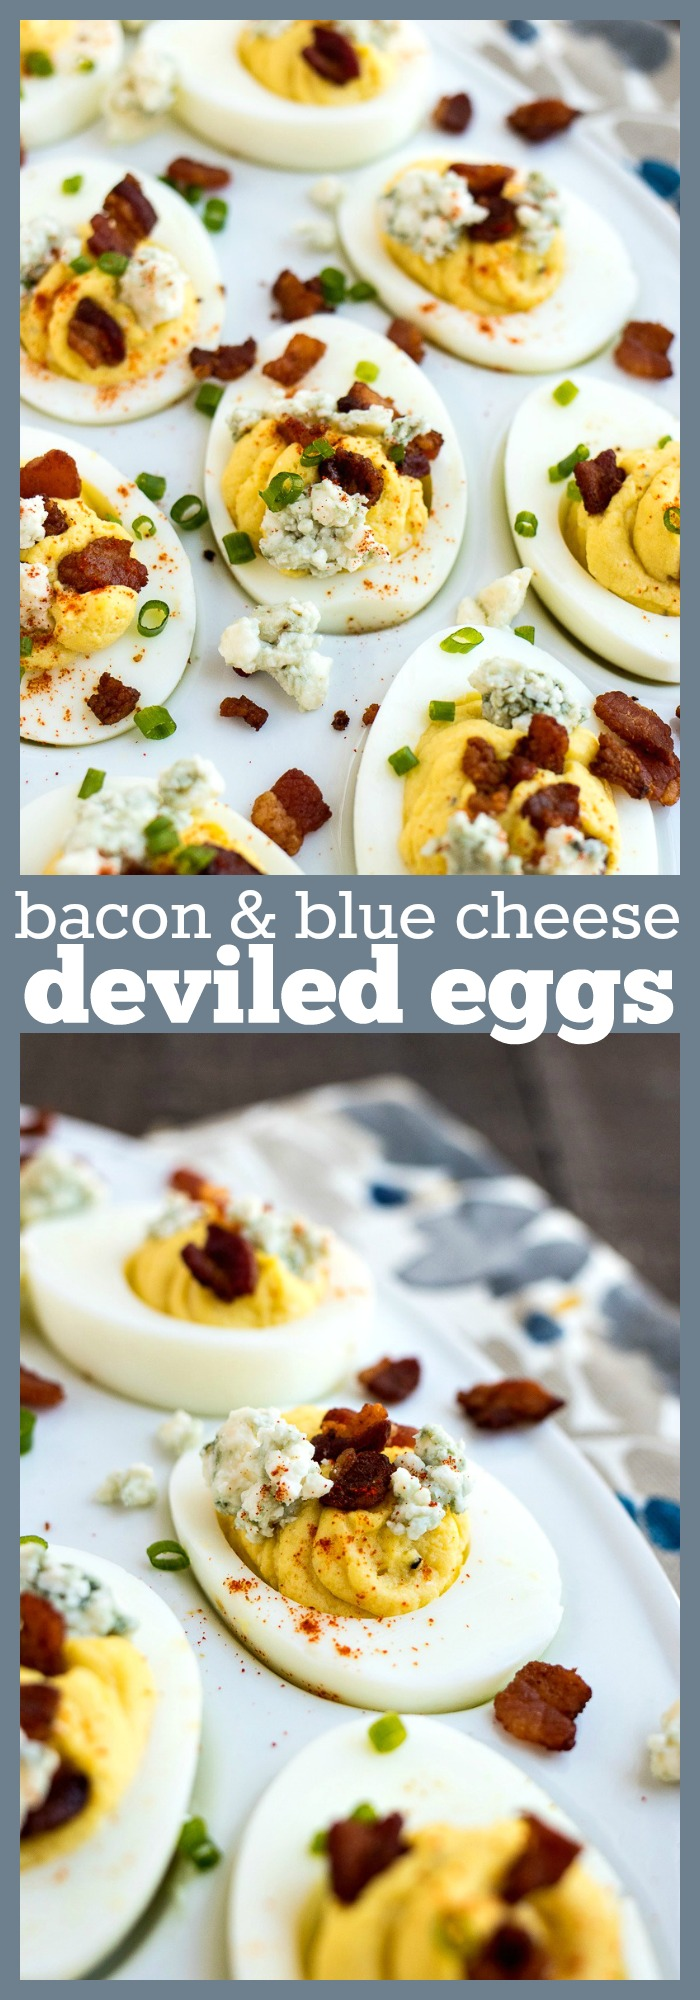 Bacon & Blue Cheese Deviled Eggs photo collage